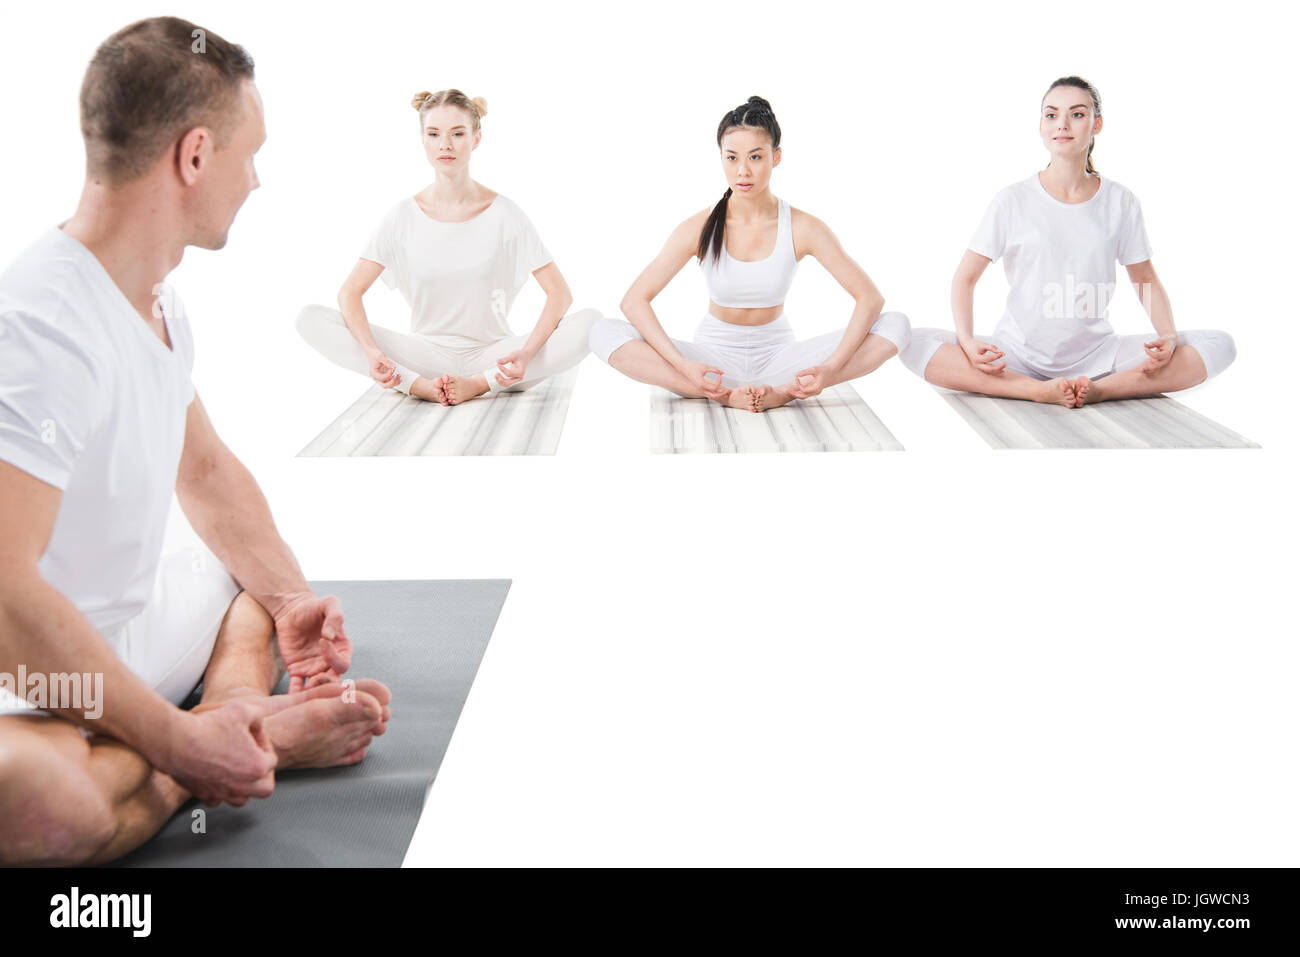 trainer helping women doing yoga pose isolated on white - Stock Image